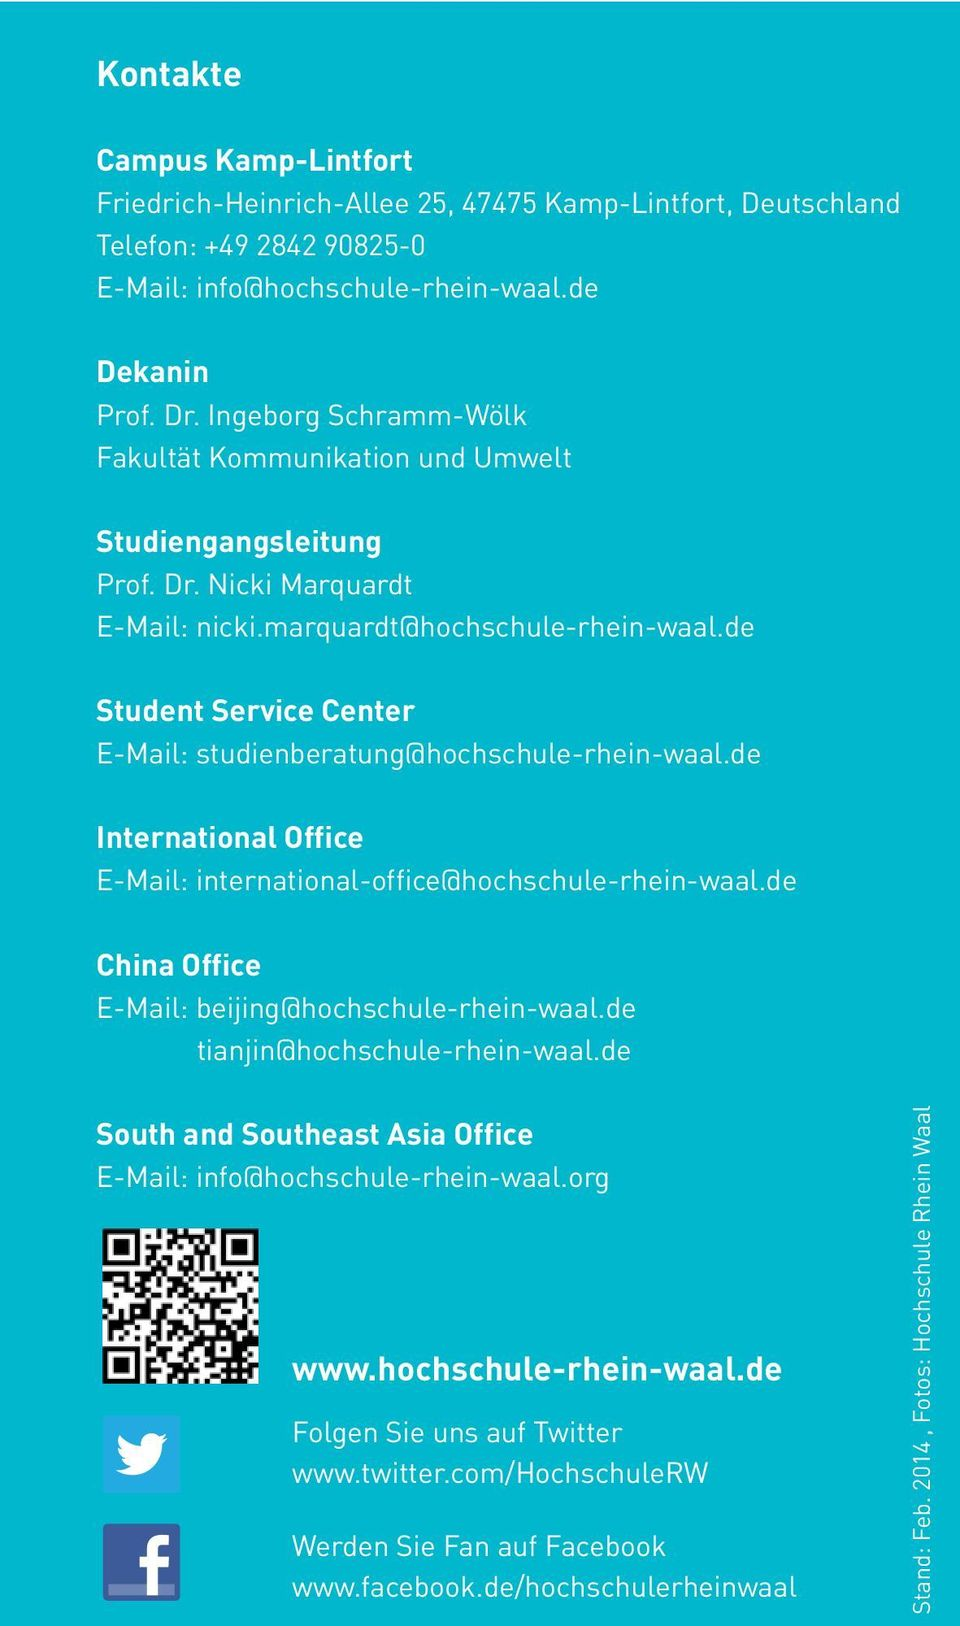 de Student Service Center E-Mail: studienberatung@hochschule-rhein-waal.de International Office E-Mail: international-office@hochschule-rhein-waal.